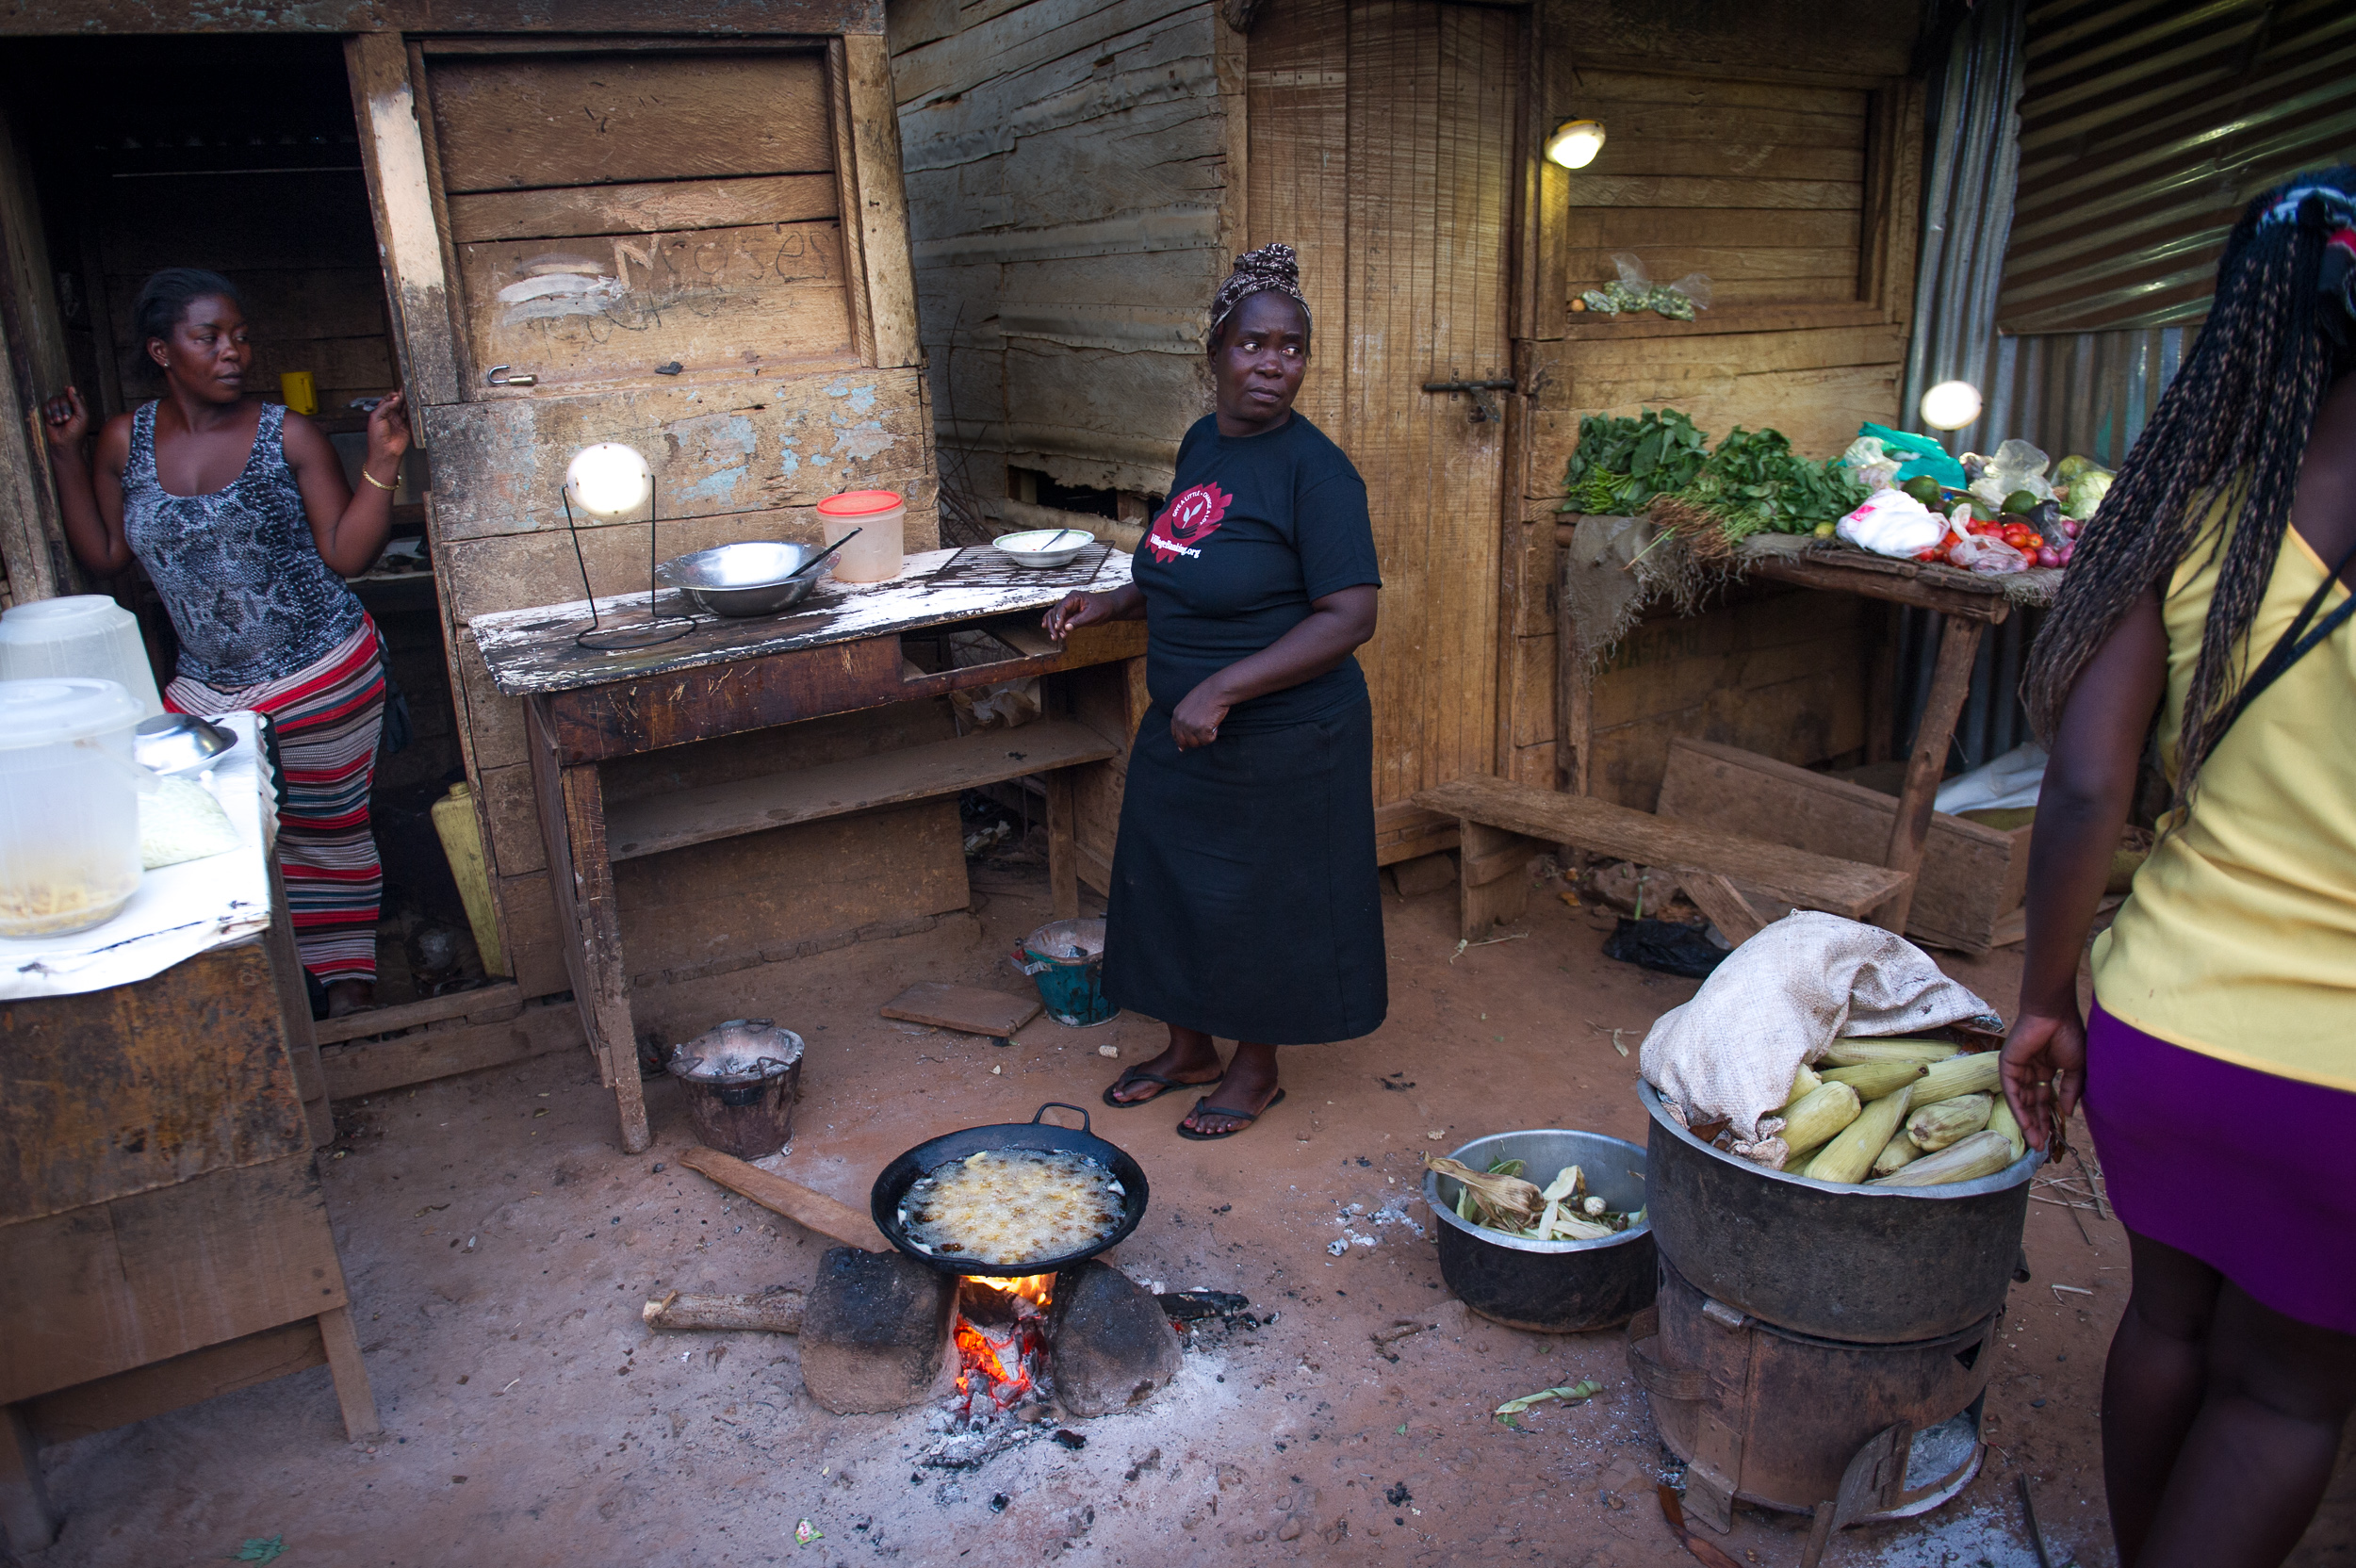 Josephine's canteen and vegetable stand is now lit by four portable solar lanterns.